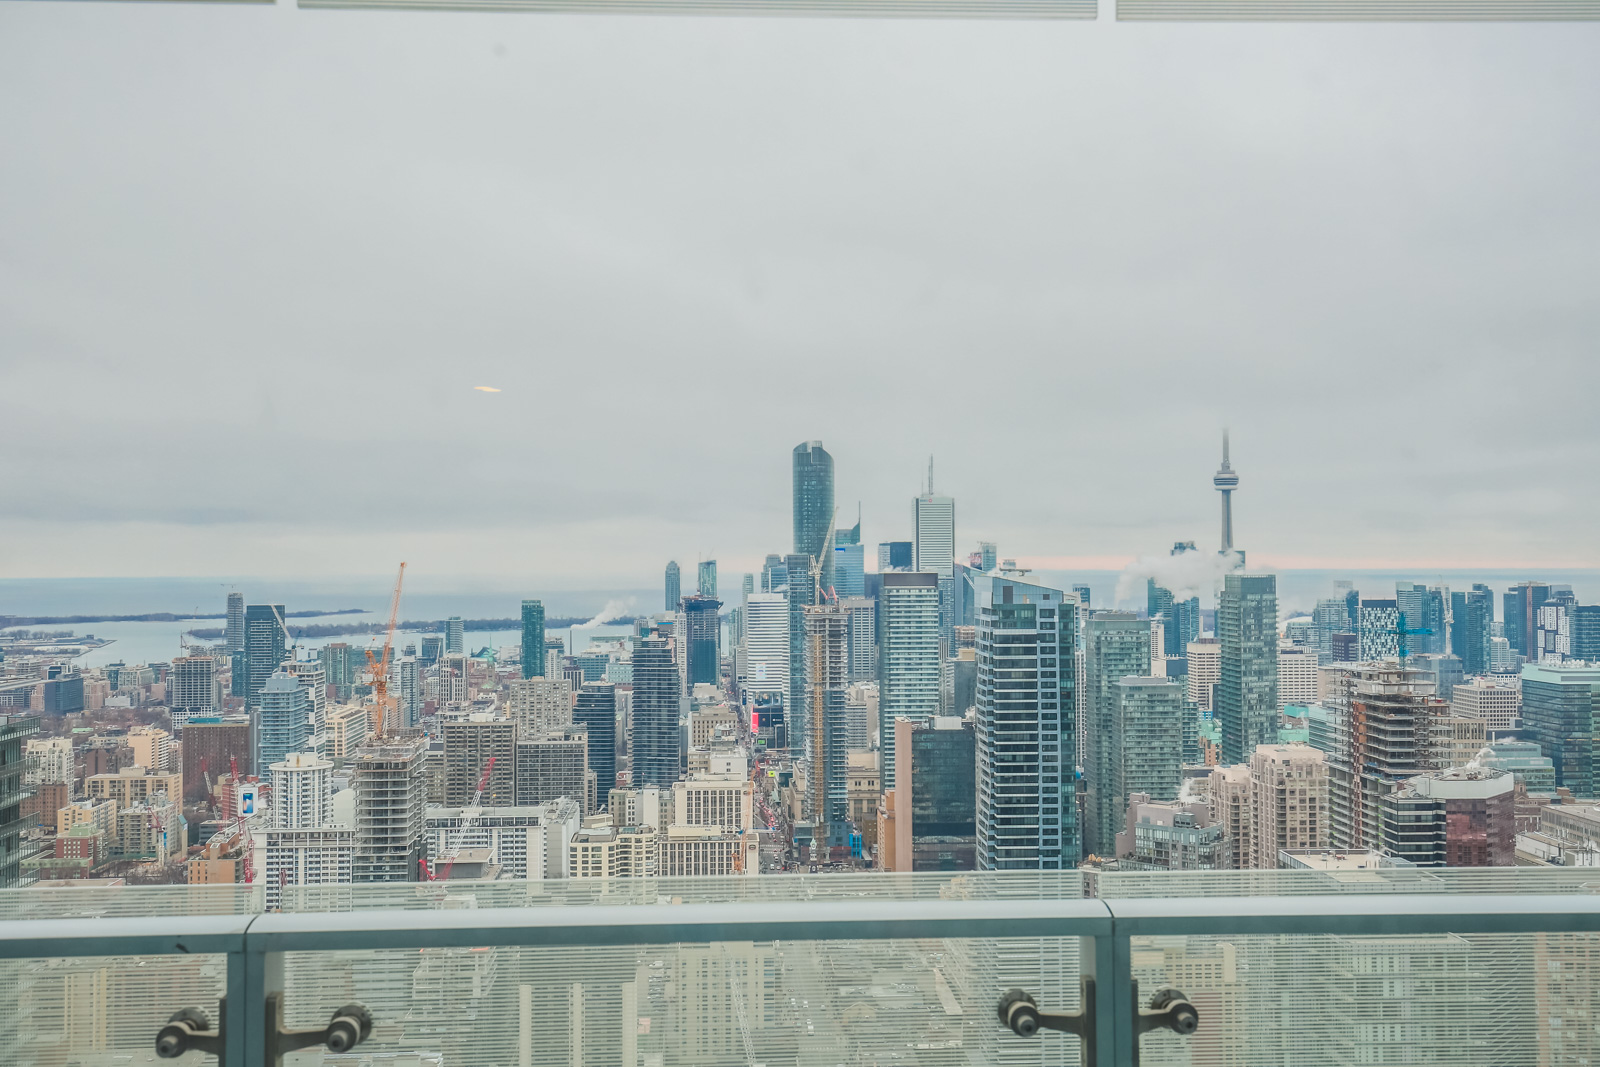 View of Toronto from 1 Bloor Street East